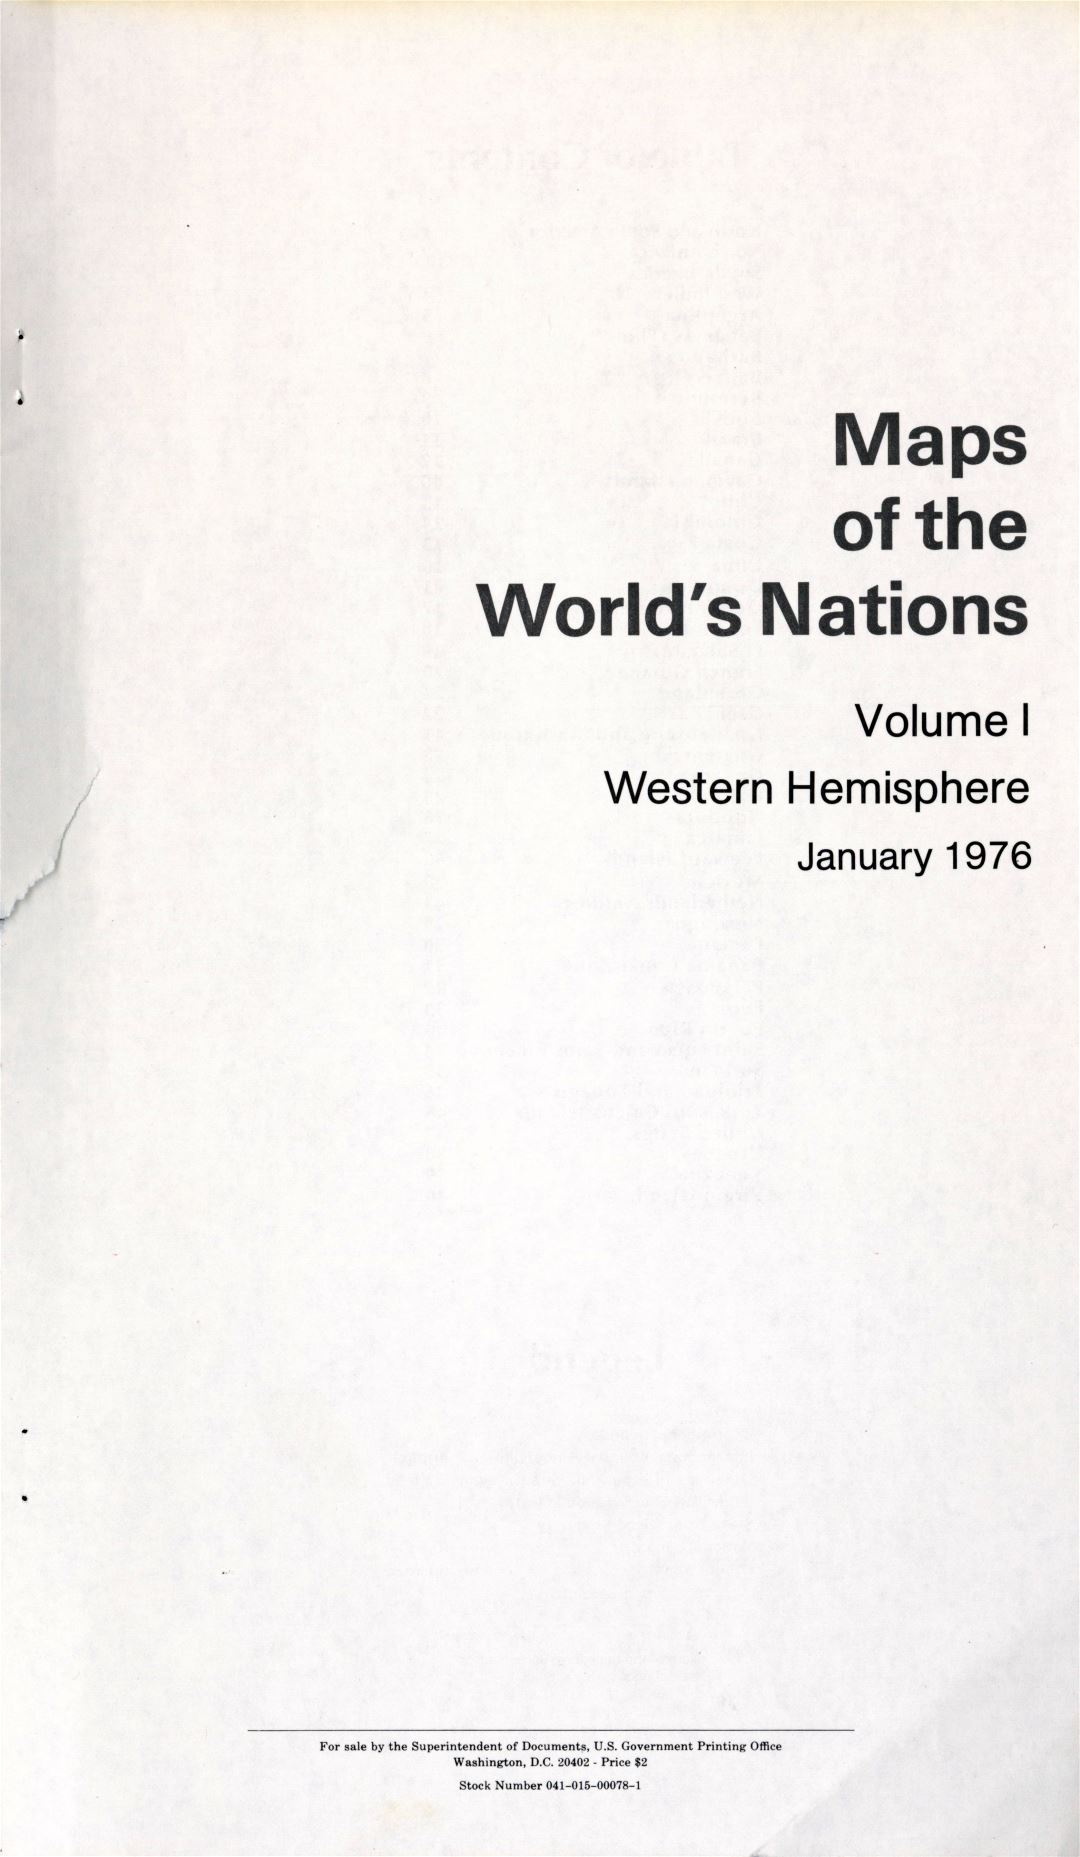 Maps of the World's Nations - Western Hemisphere (title page)